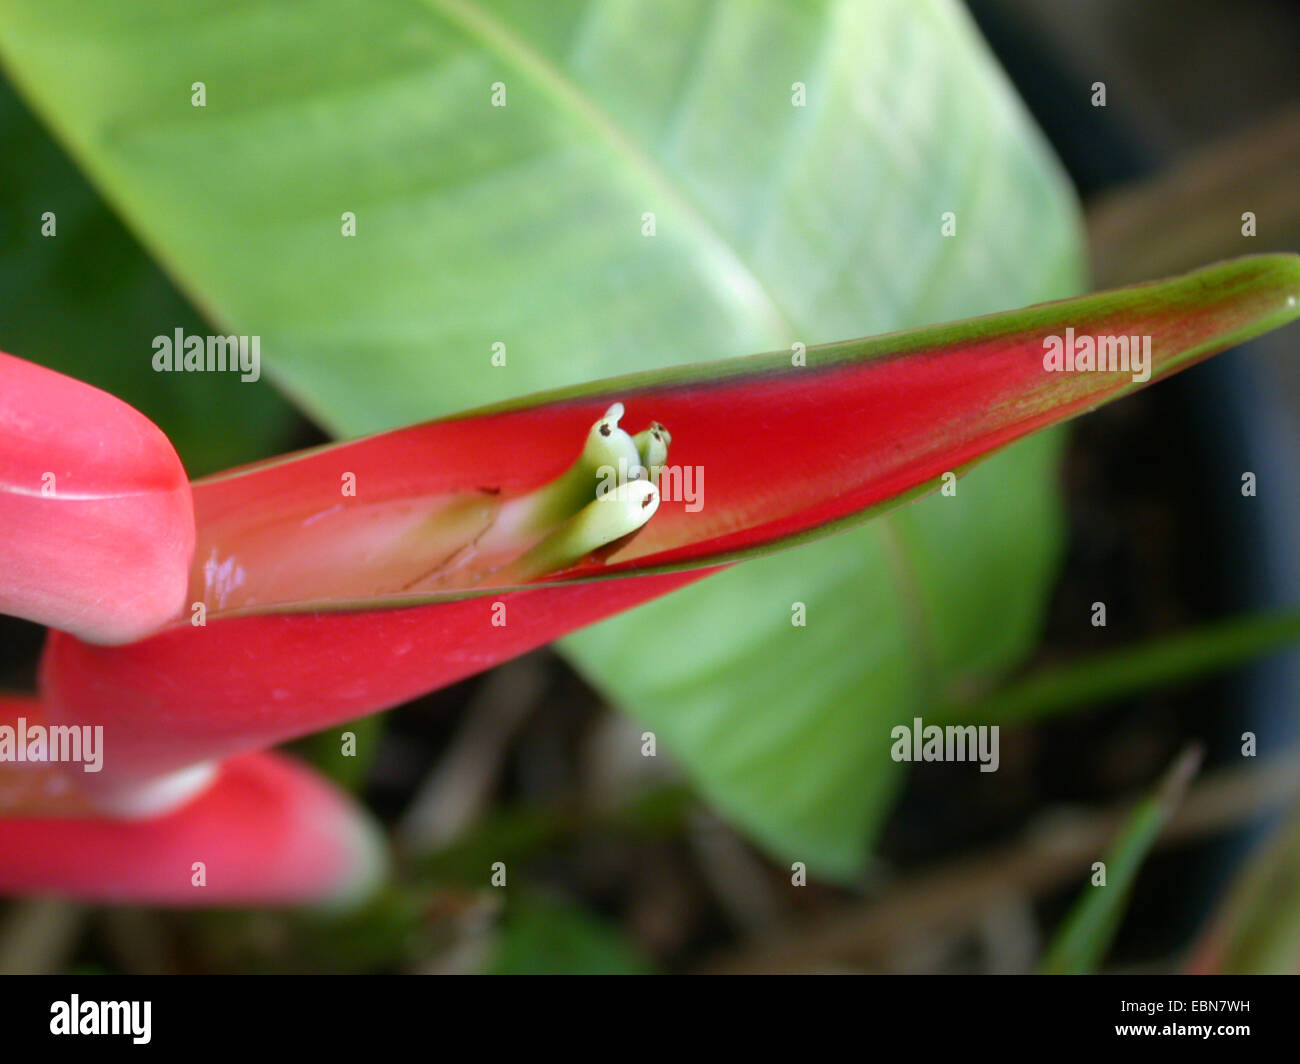 heliconia (Heliconia stricta), detail of an inflorescence - Stock Image